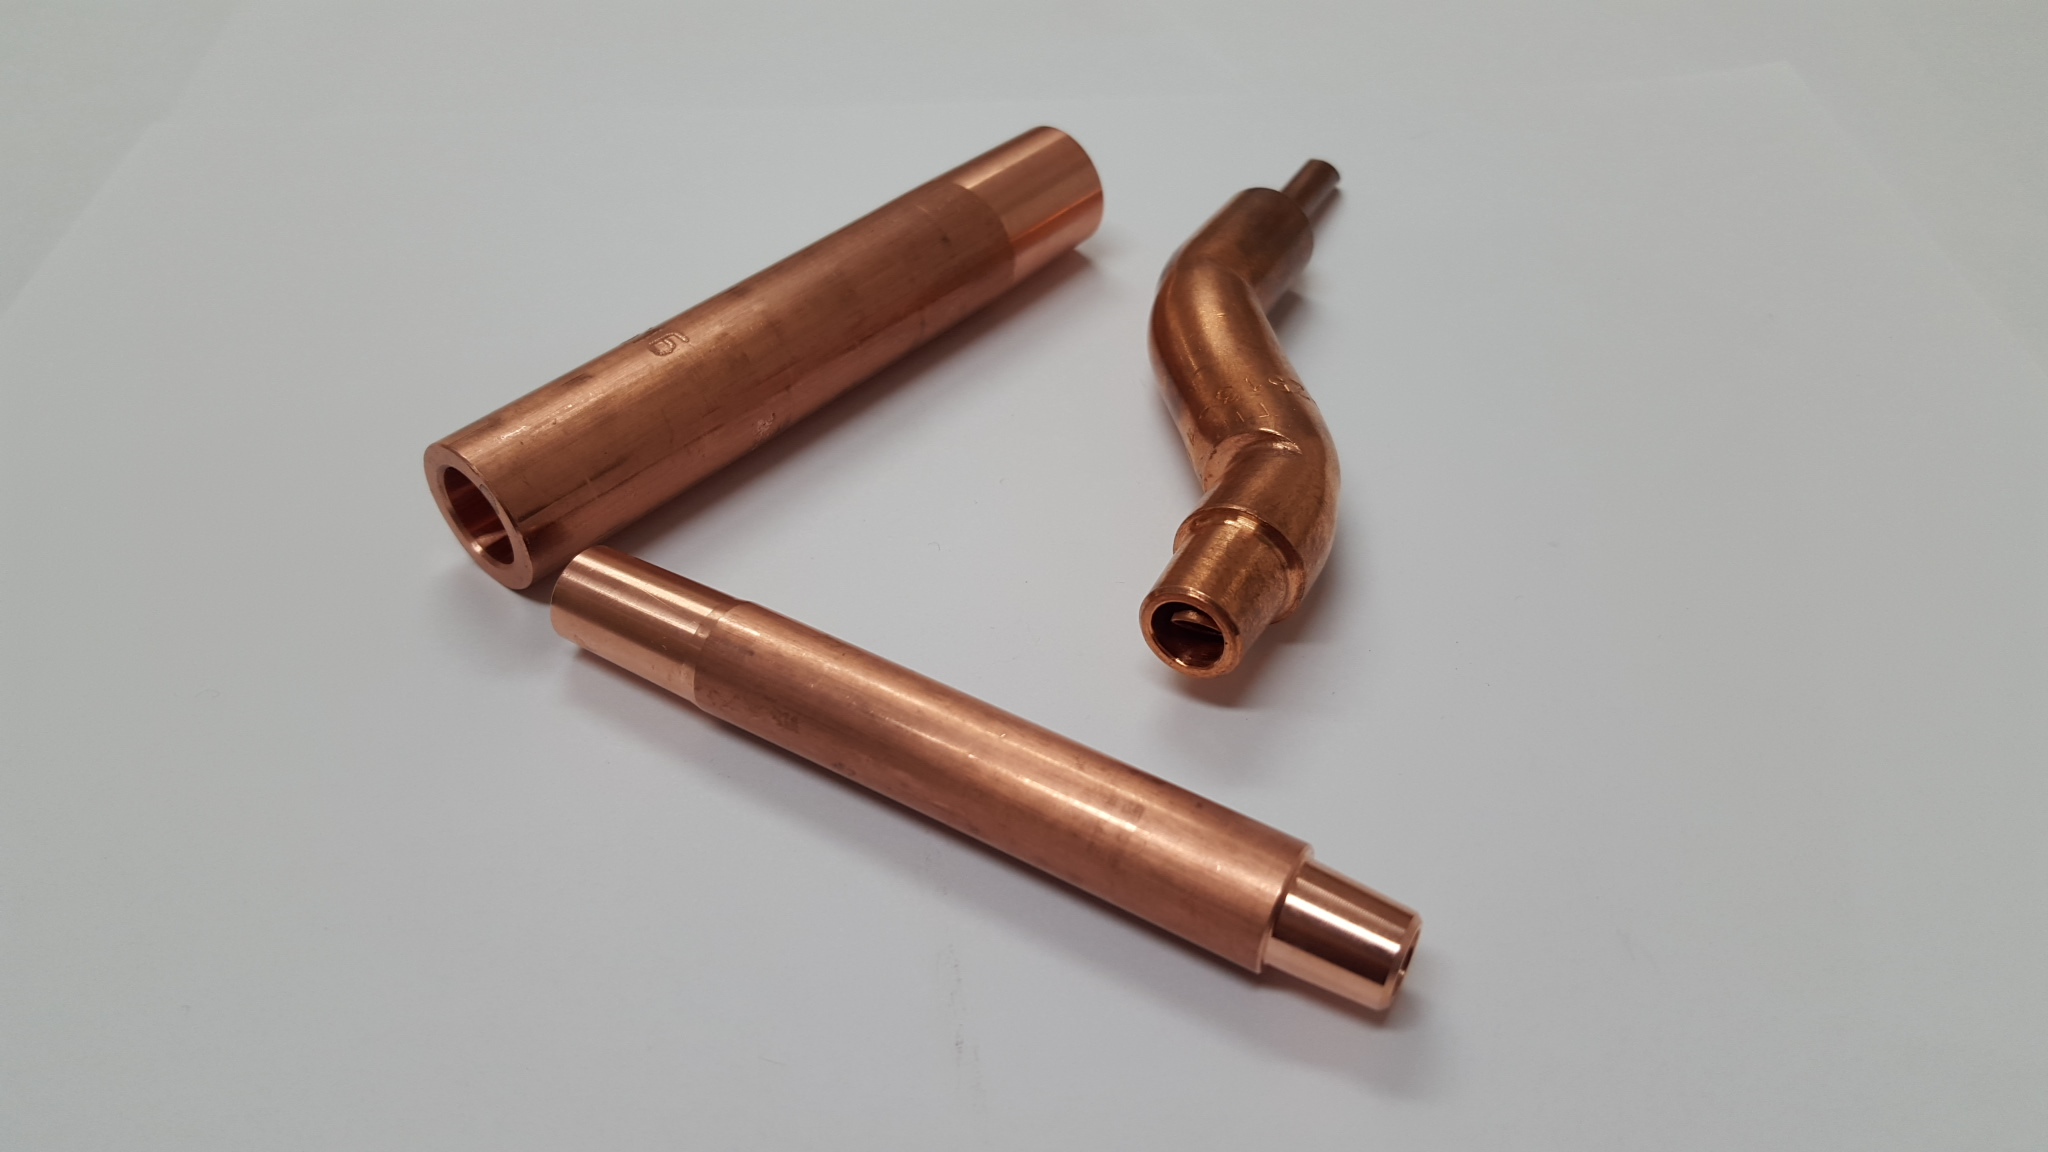 Resistance spot welding processes huys shanks for spot welding caps sciox Gallery